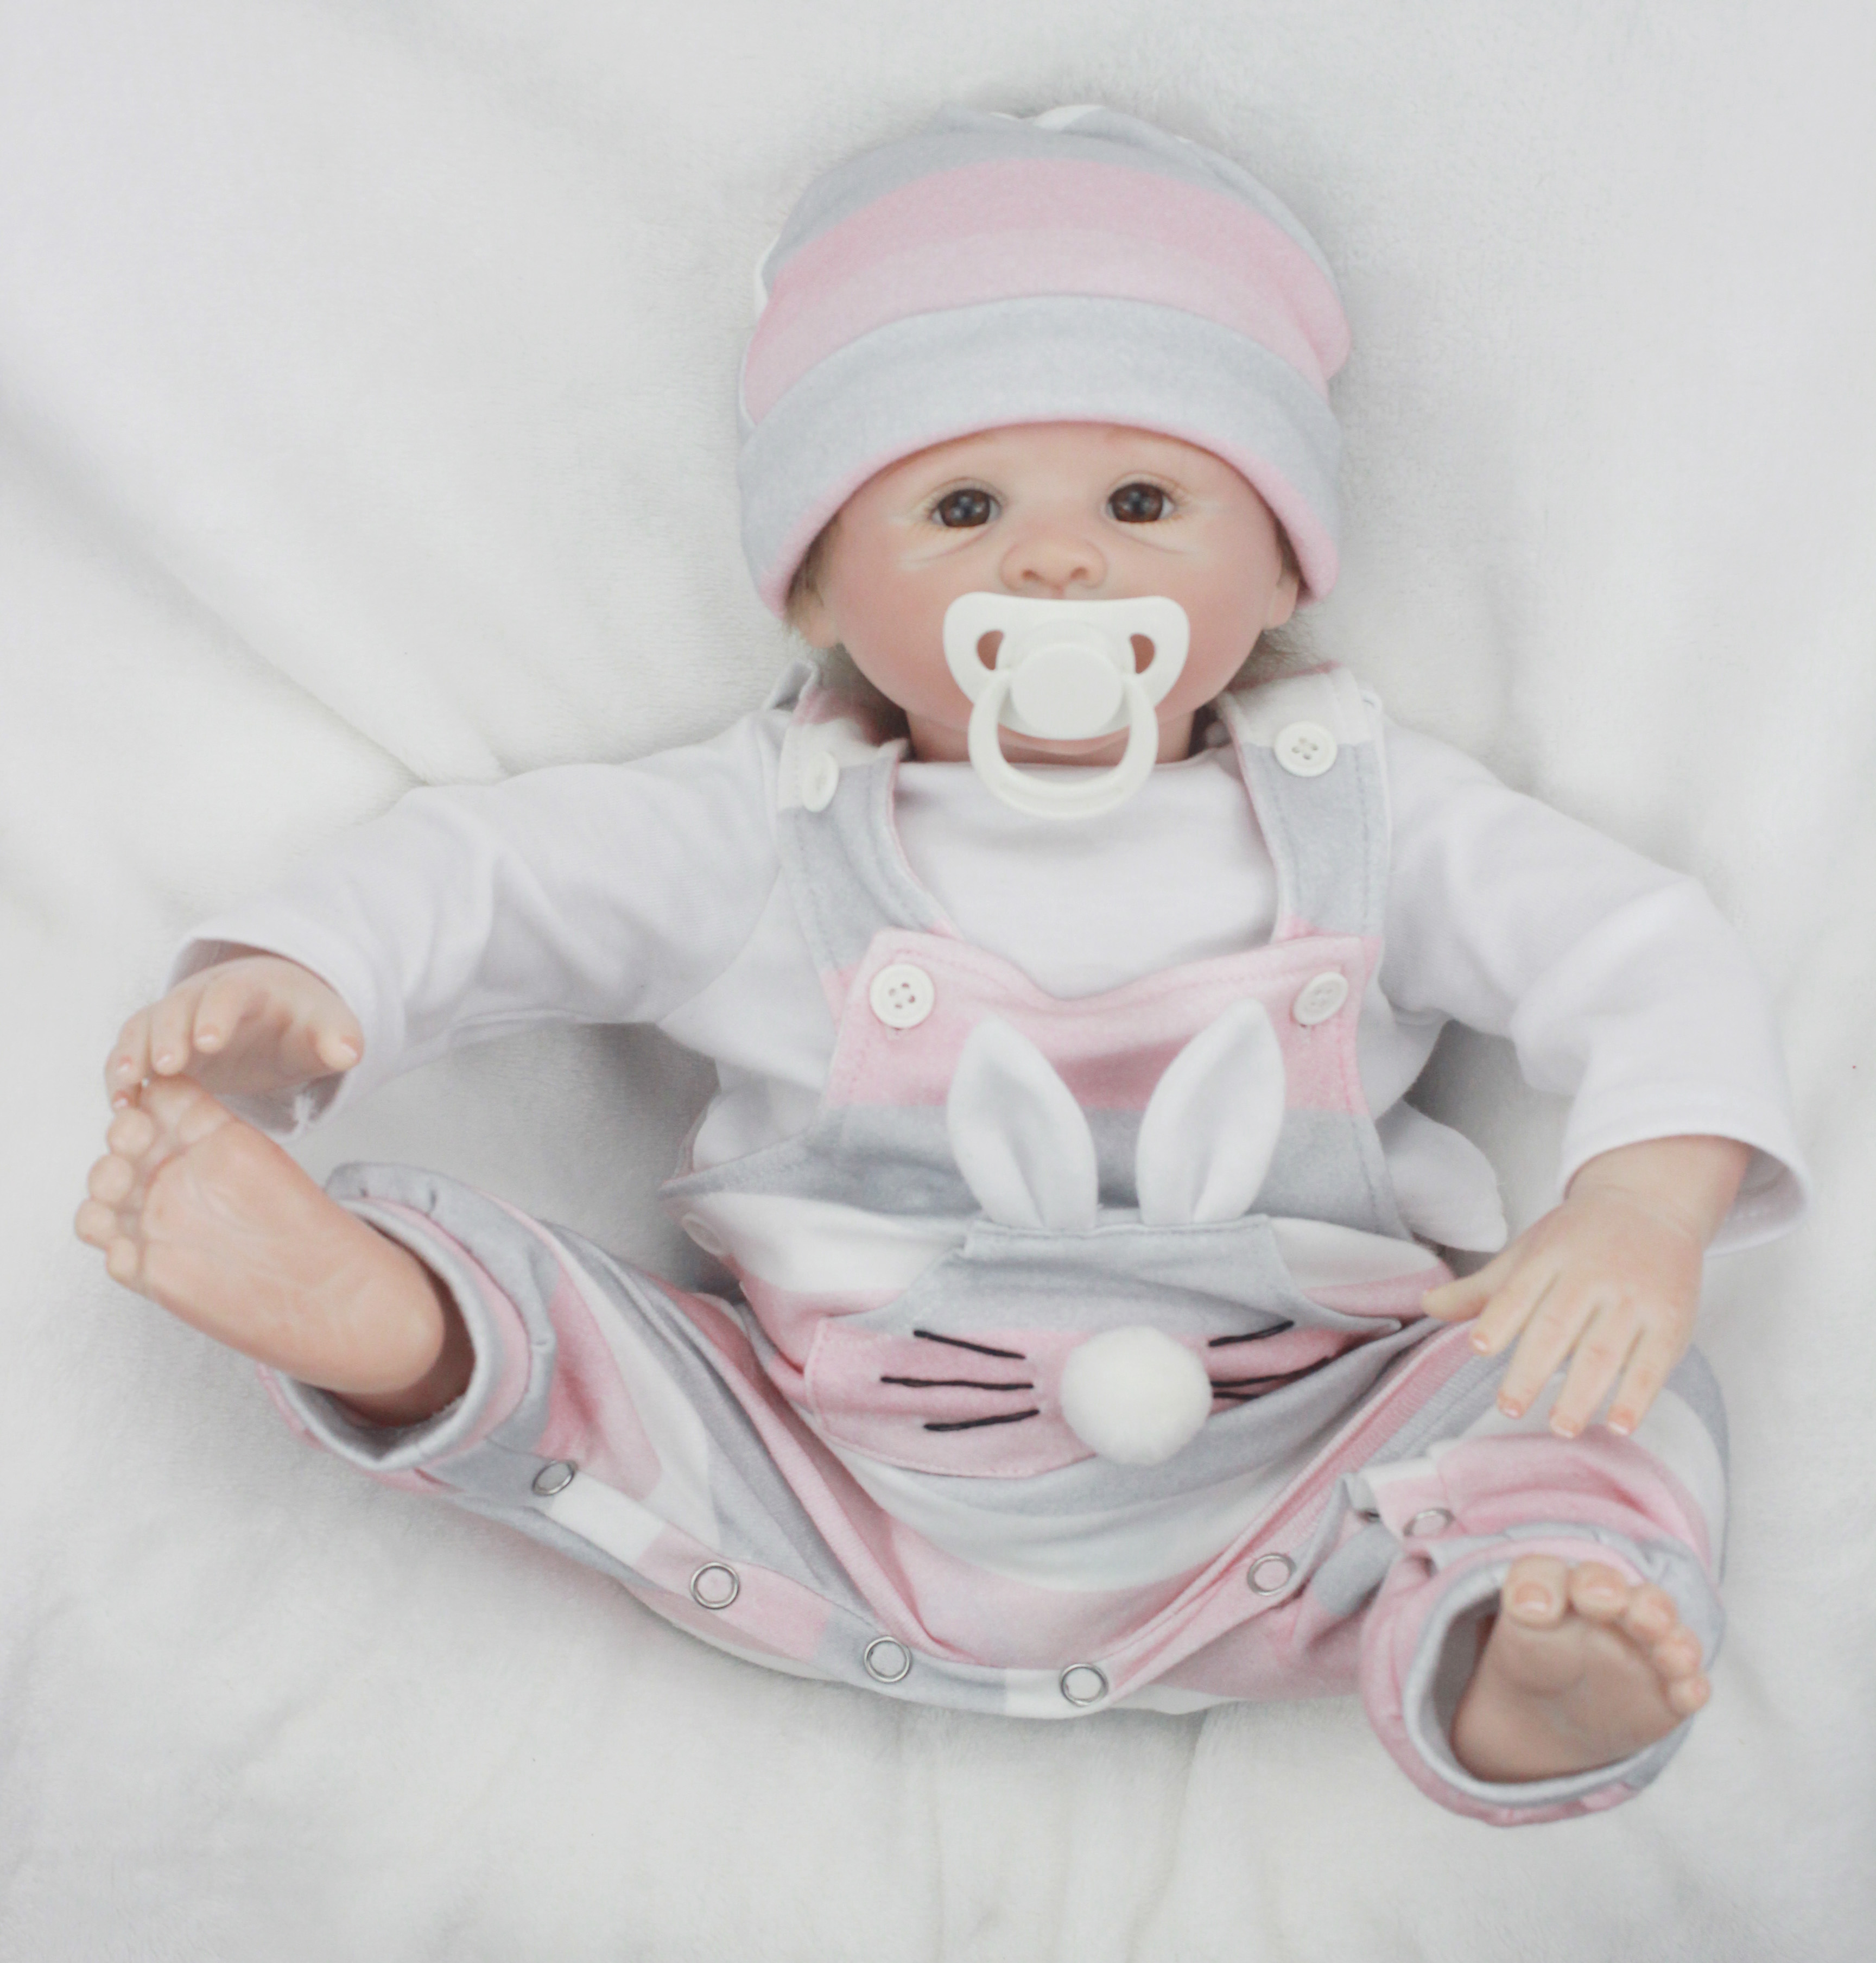 50cm Soft Silicone Vinyl Reborn Baby Doll Newborn Lifelike Doll Fashion Playmates Toy for Kids Children Girl Birthday Gifts new arrival 55cm blue eyes pink clothes lifelike baby soft girl doll with free plush toy as kids xmas gifts birthday doll toys